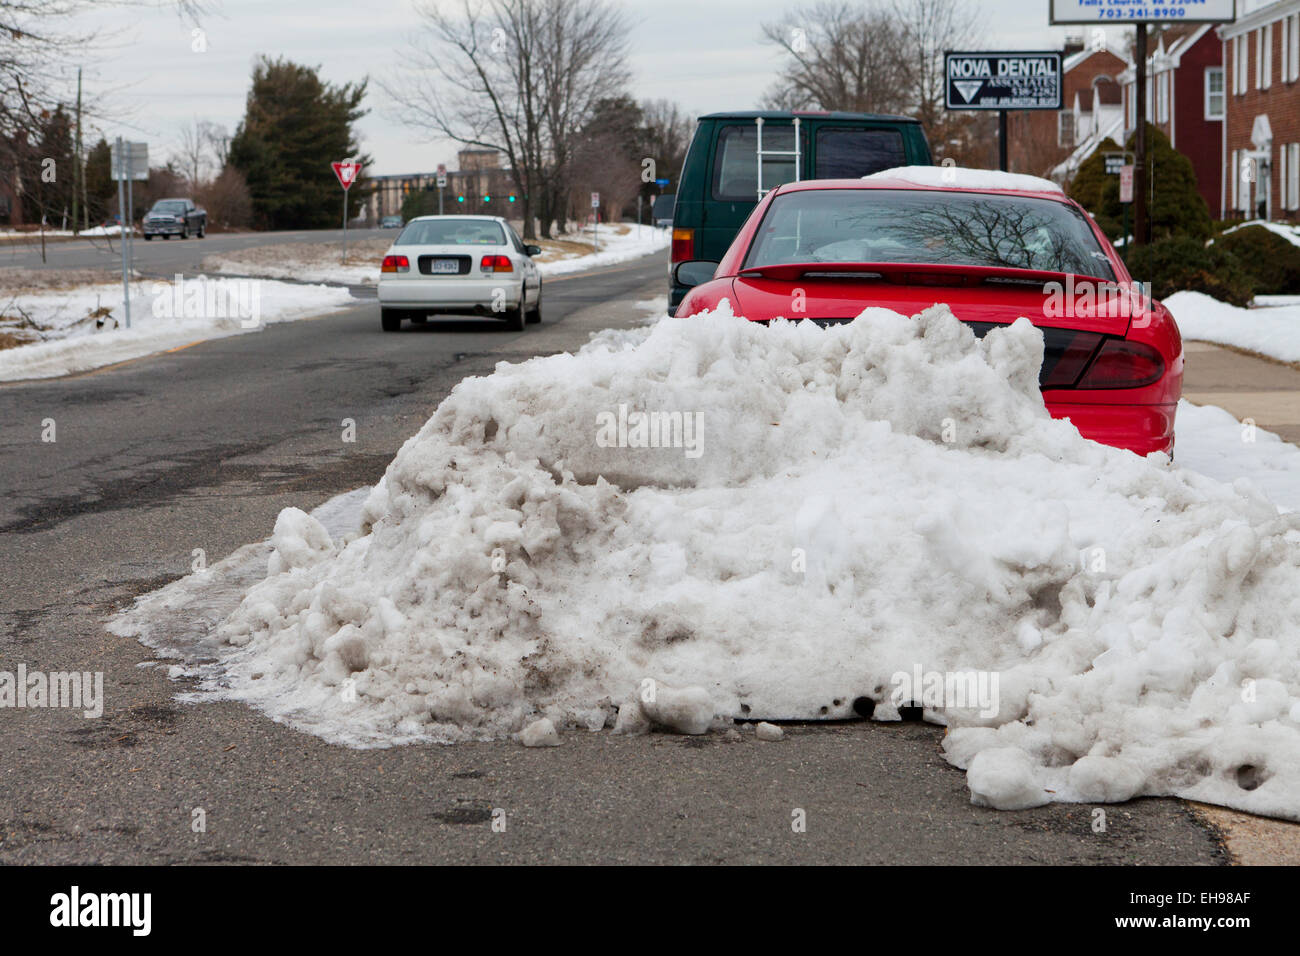 Street parked car blocked in by plowed snow - USA - Stock Image